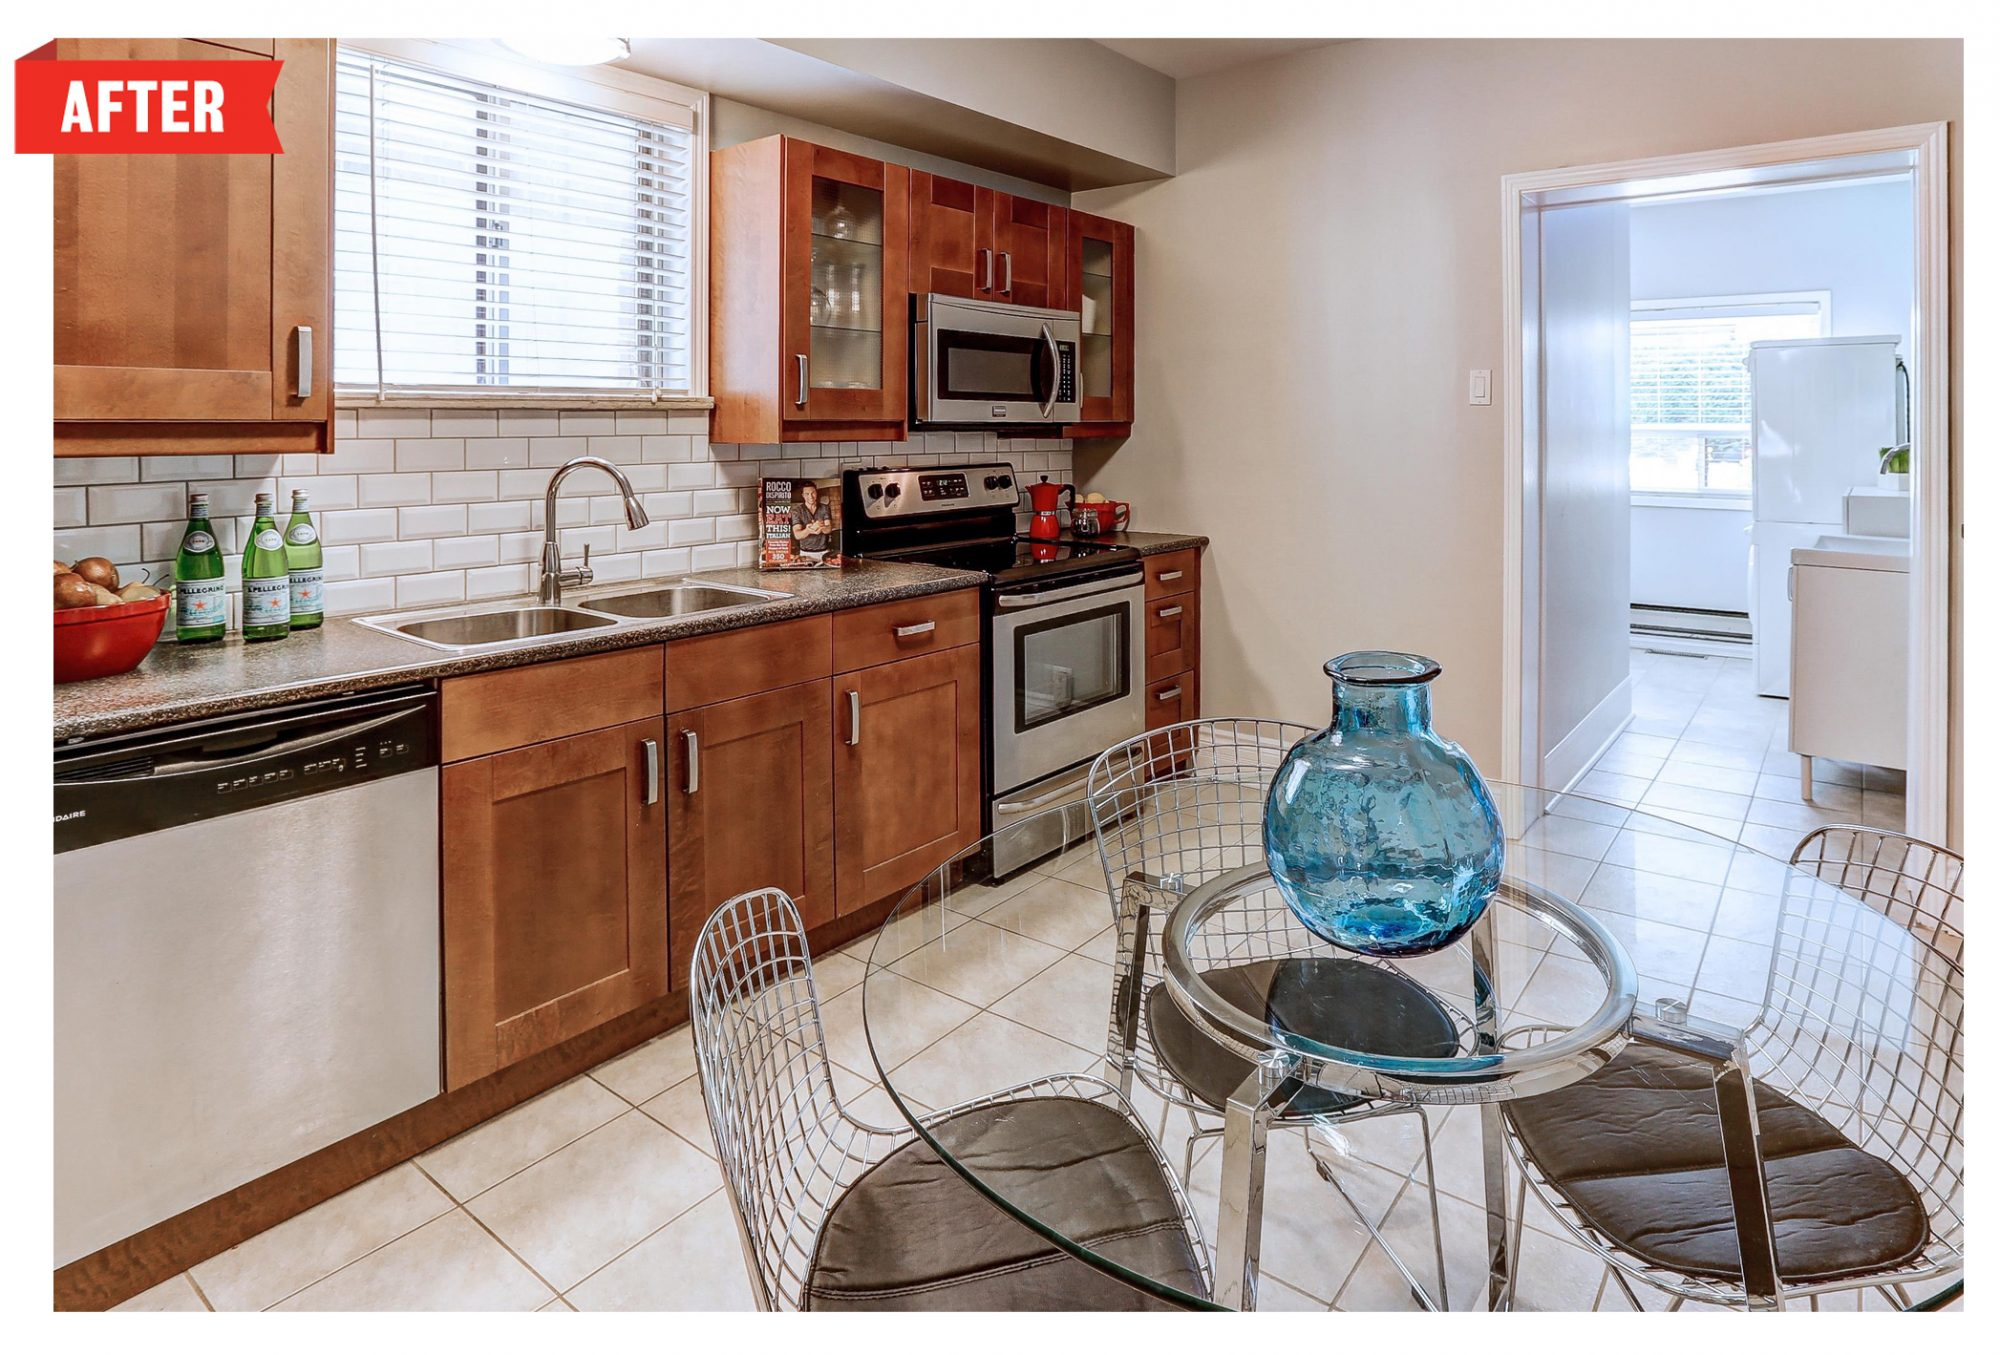 toronto-house-staging-318-montrose-avenue-kitchen-after